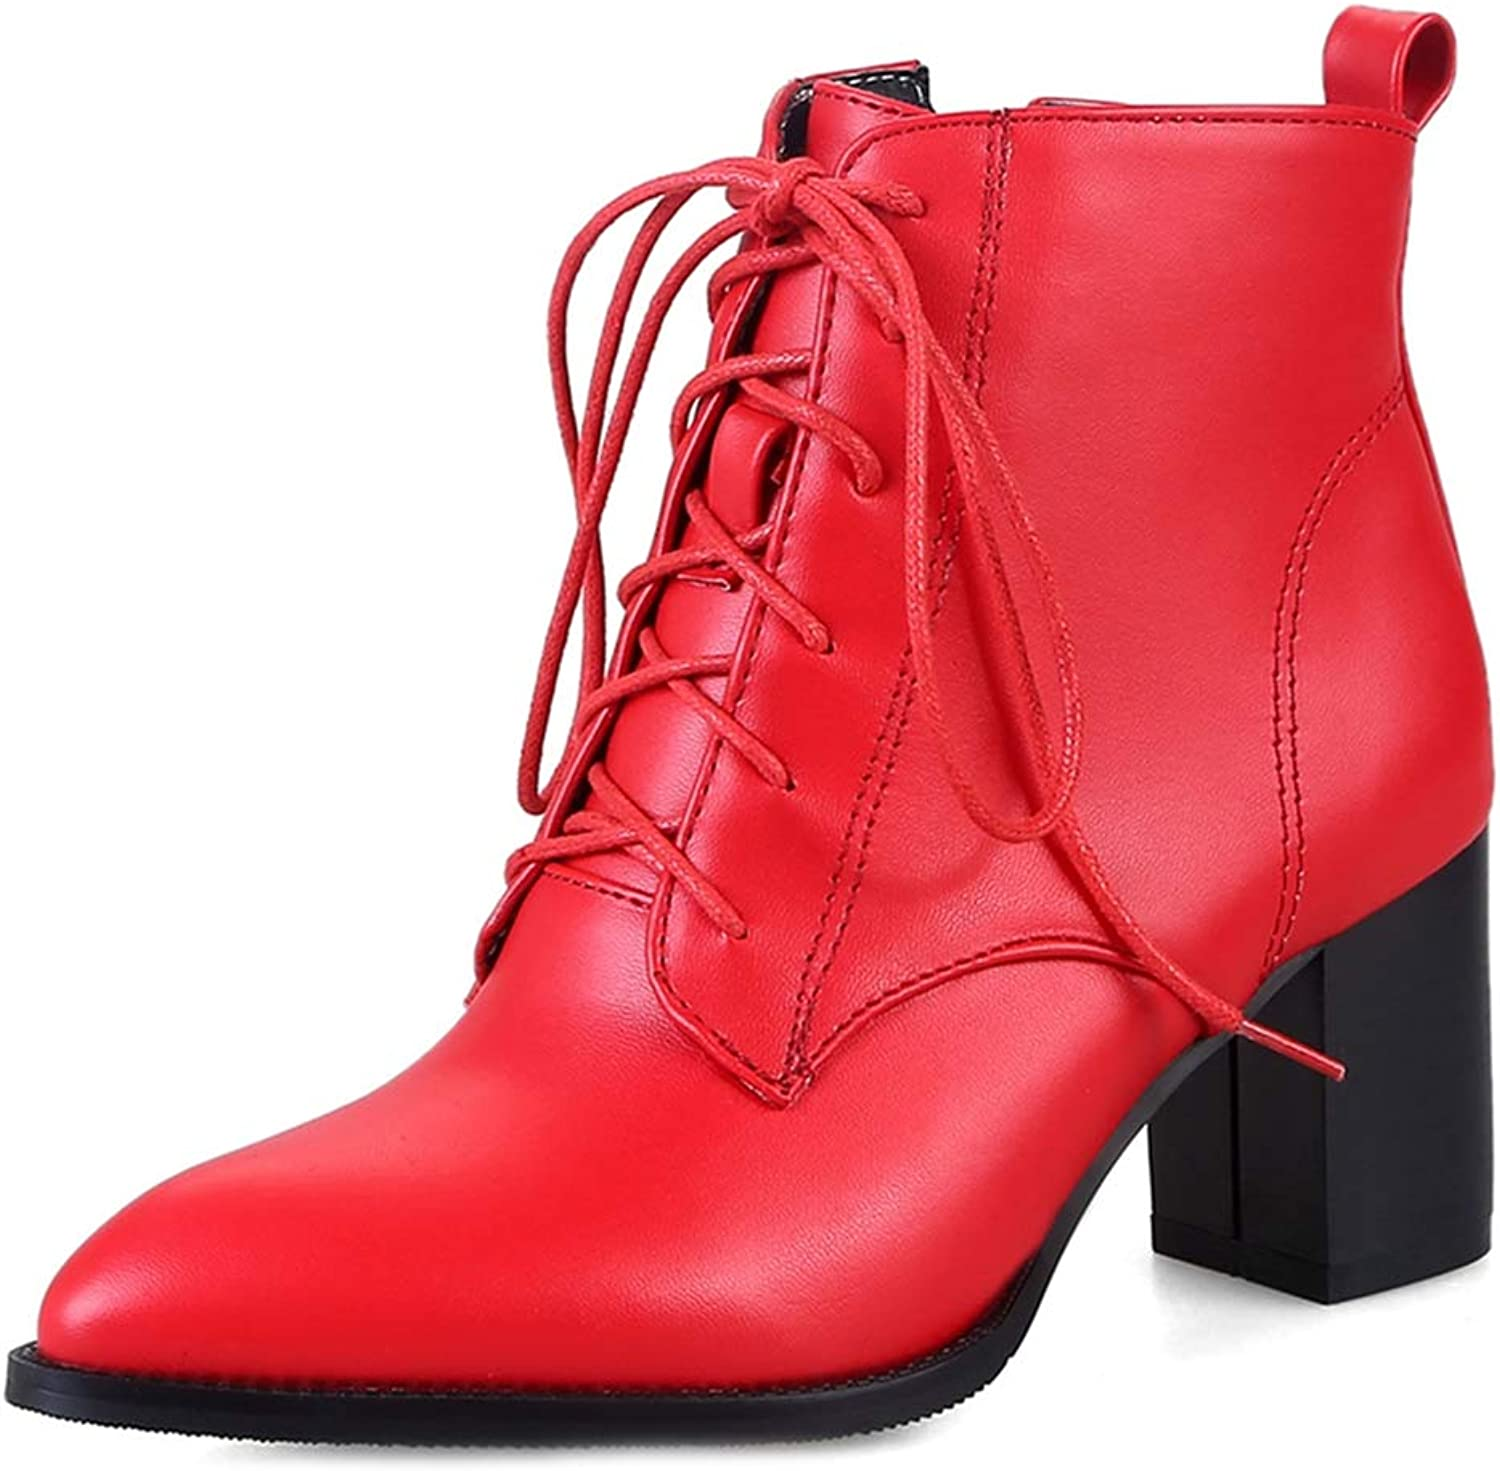 GIY Women's Fashion Pointed Toe Chunky Ankle Boots Block Heel Lace Up Zip Booties Casual Martin Short Boot